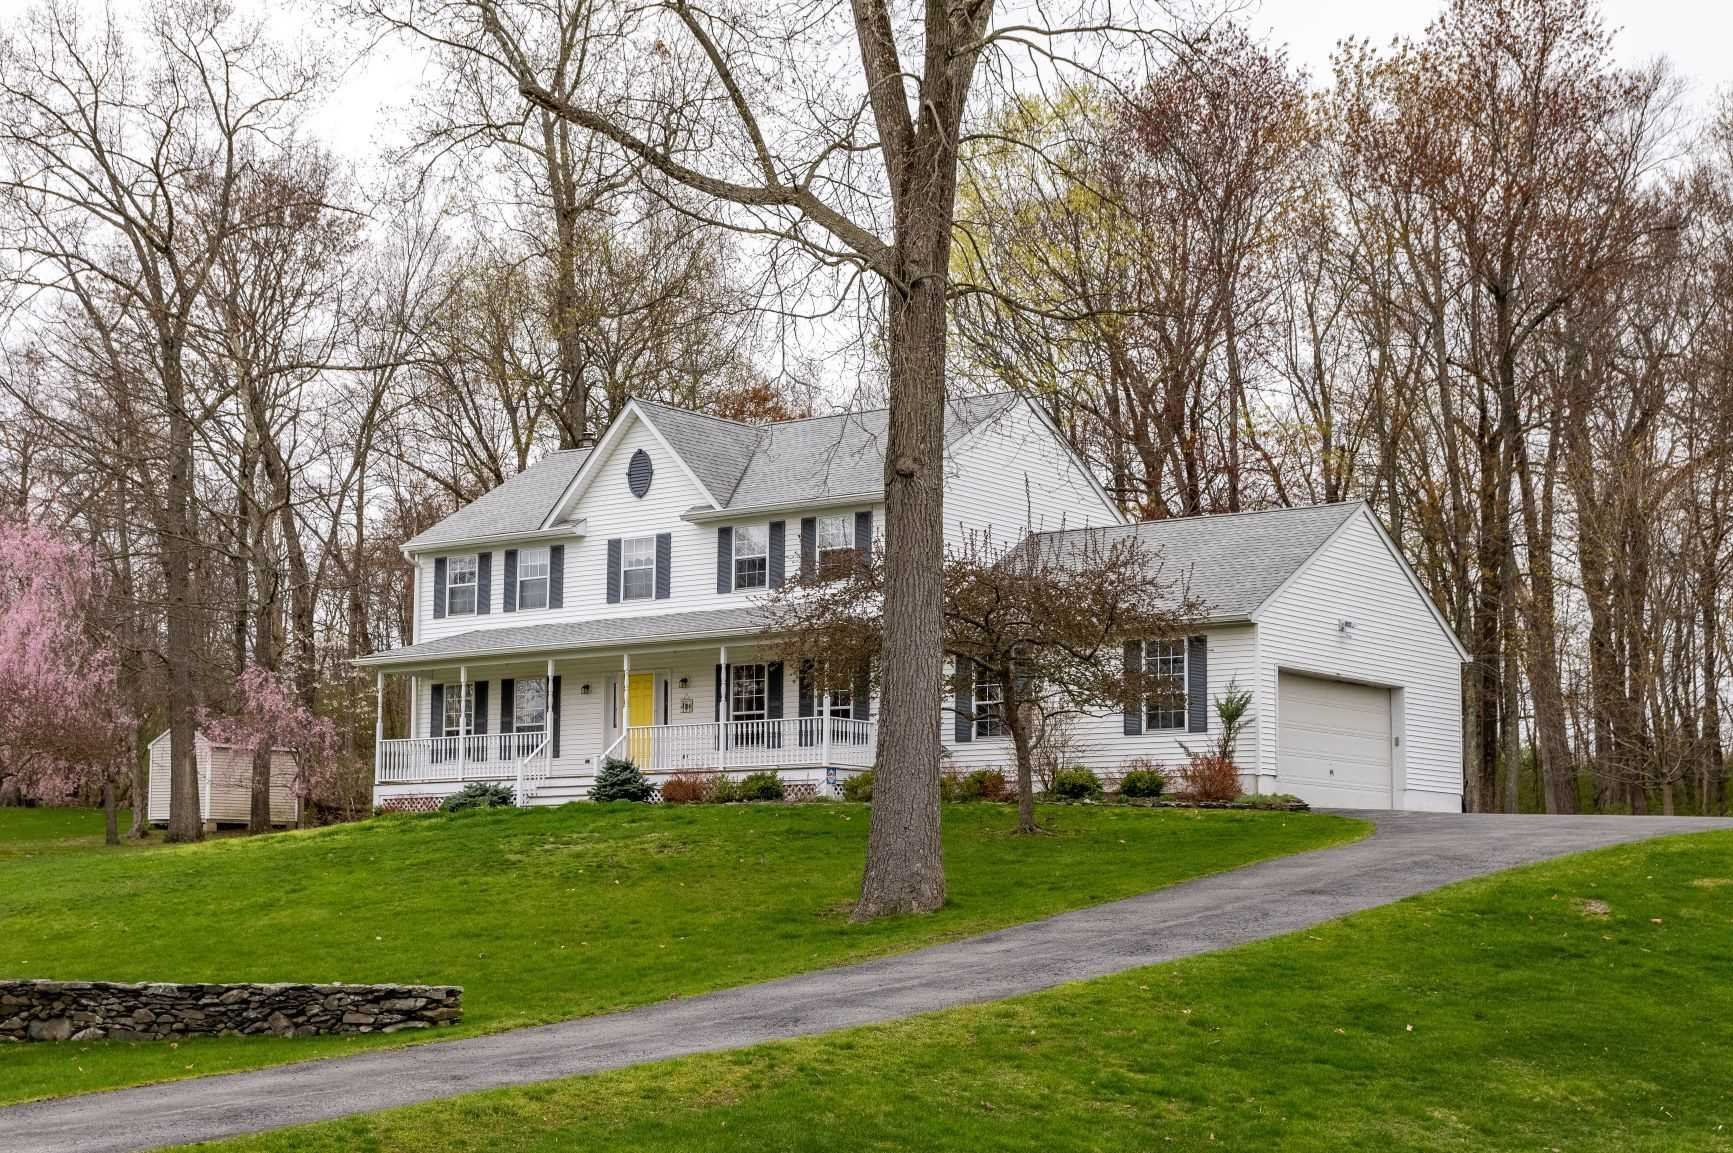 42 COLONIAL DR, Poughkeepsie, NY 12603 - #: 399662